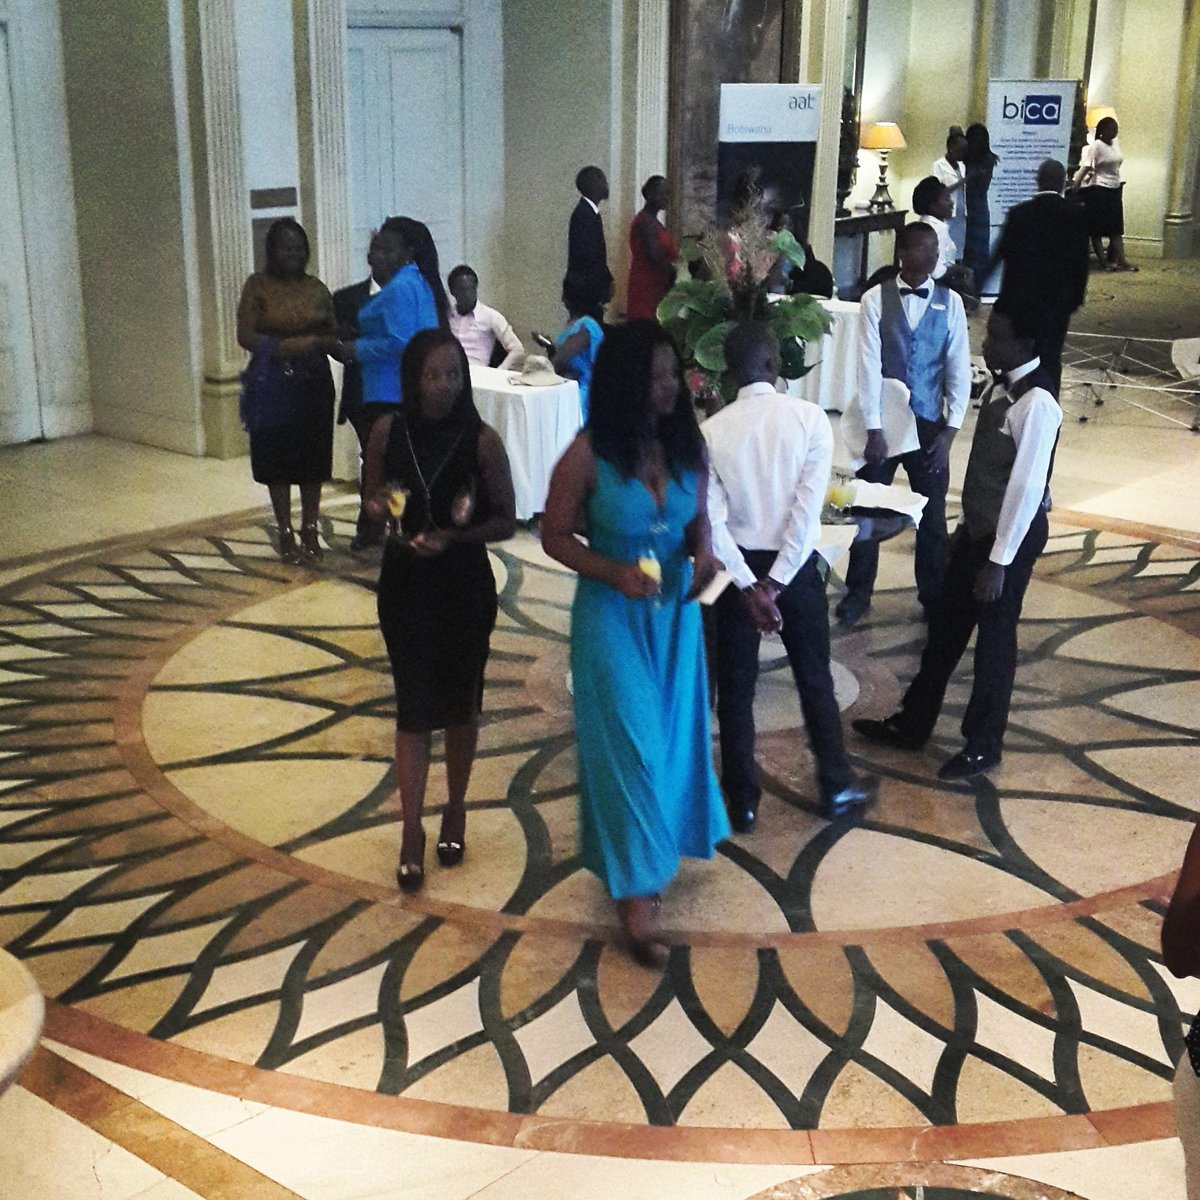 People are starting to take their seats for the #AATBotswana Achievement Awards. Please tell us if you are here http://t.co/iLsakwwqT8